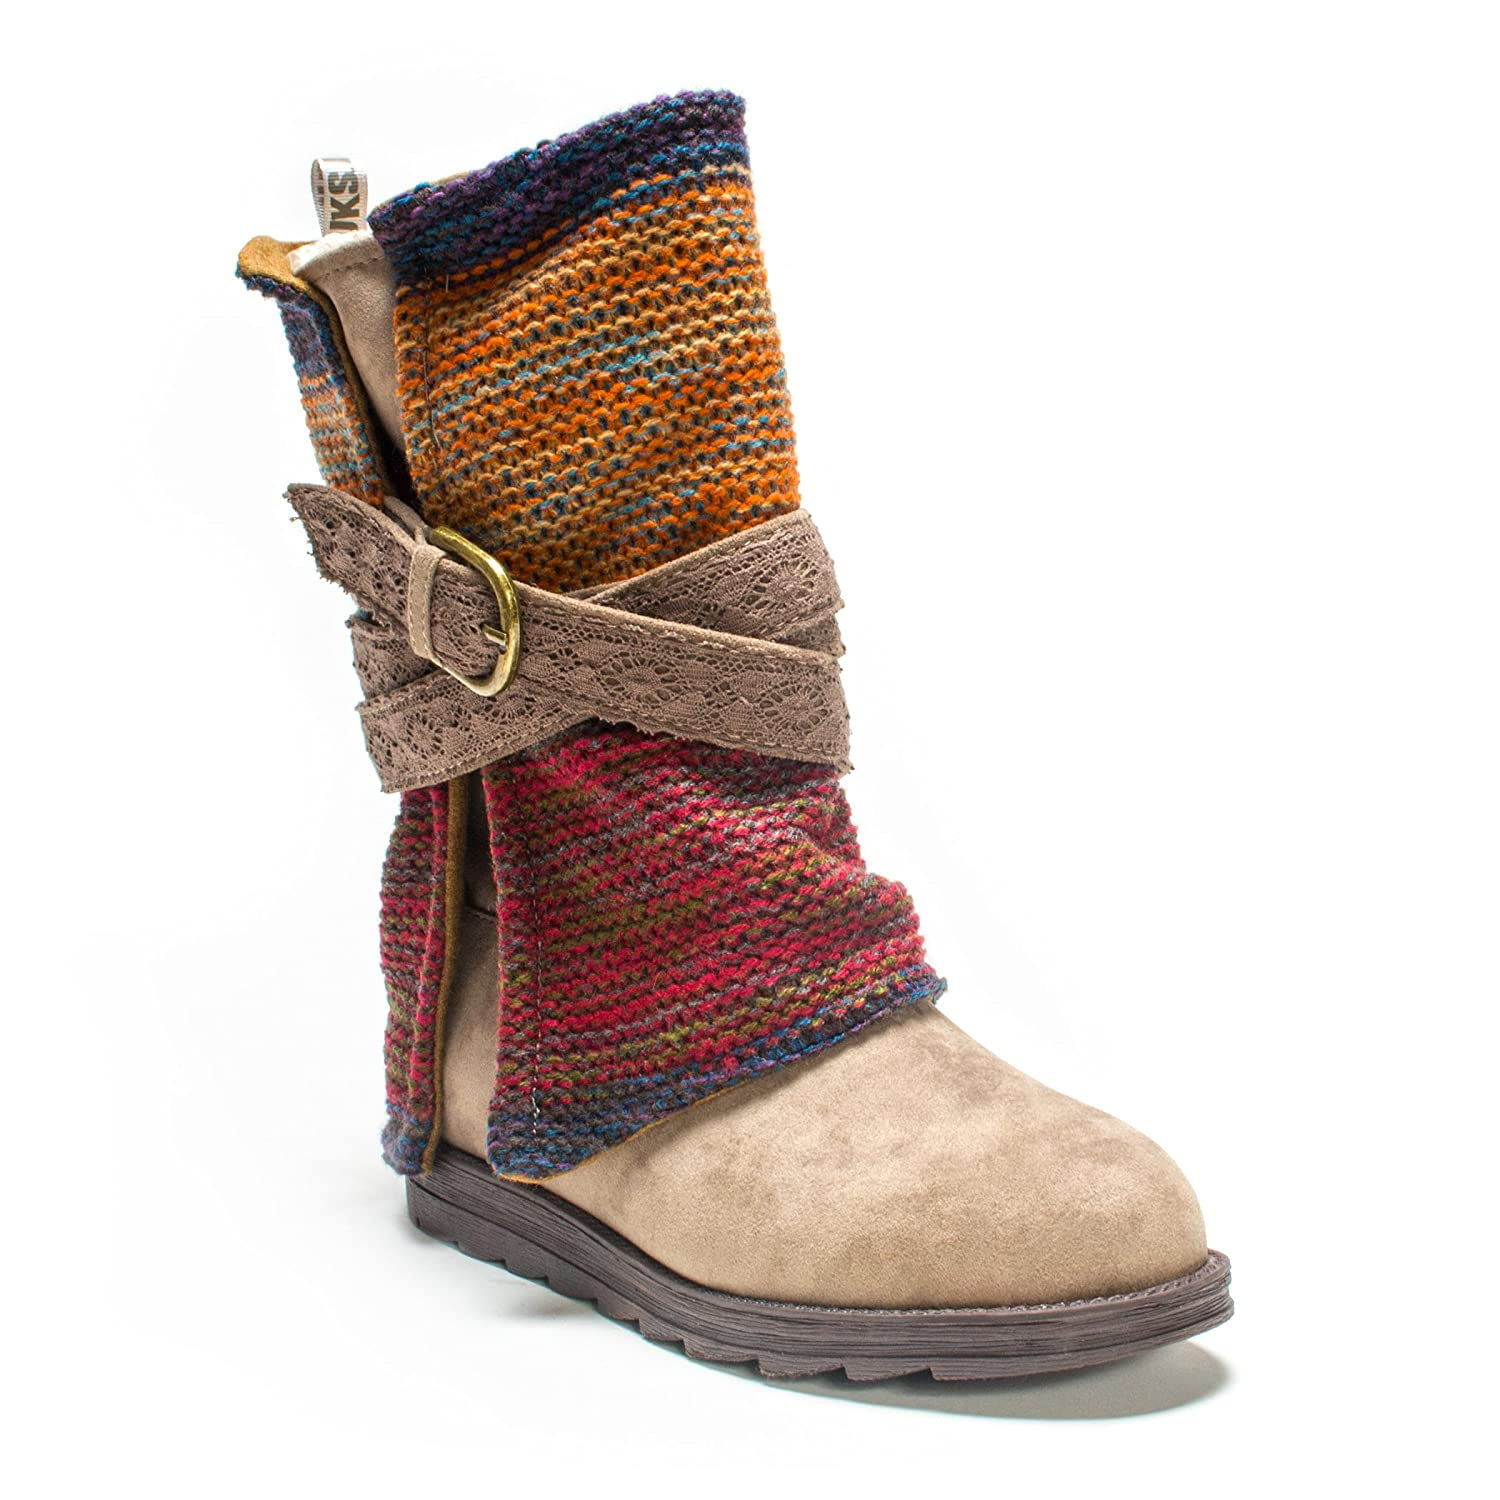 MUK LUKS Women's Nikki Belt Wrapped Boot B00K71QXMQ 7 B(M) US|Medium Beige